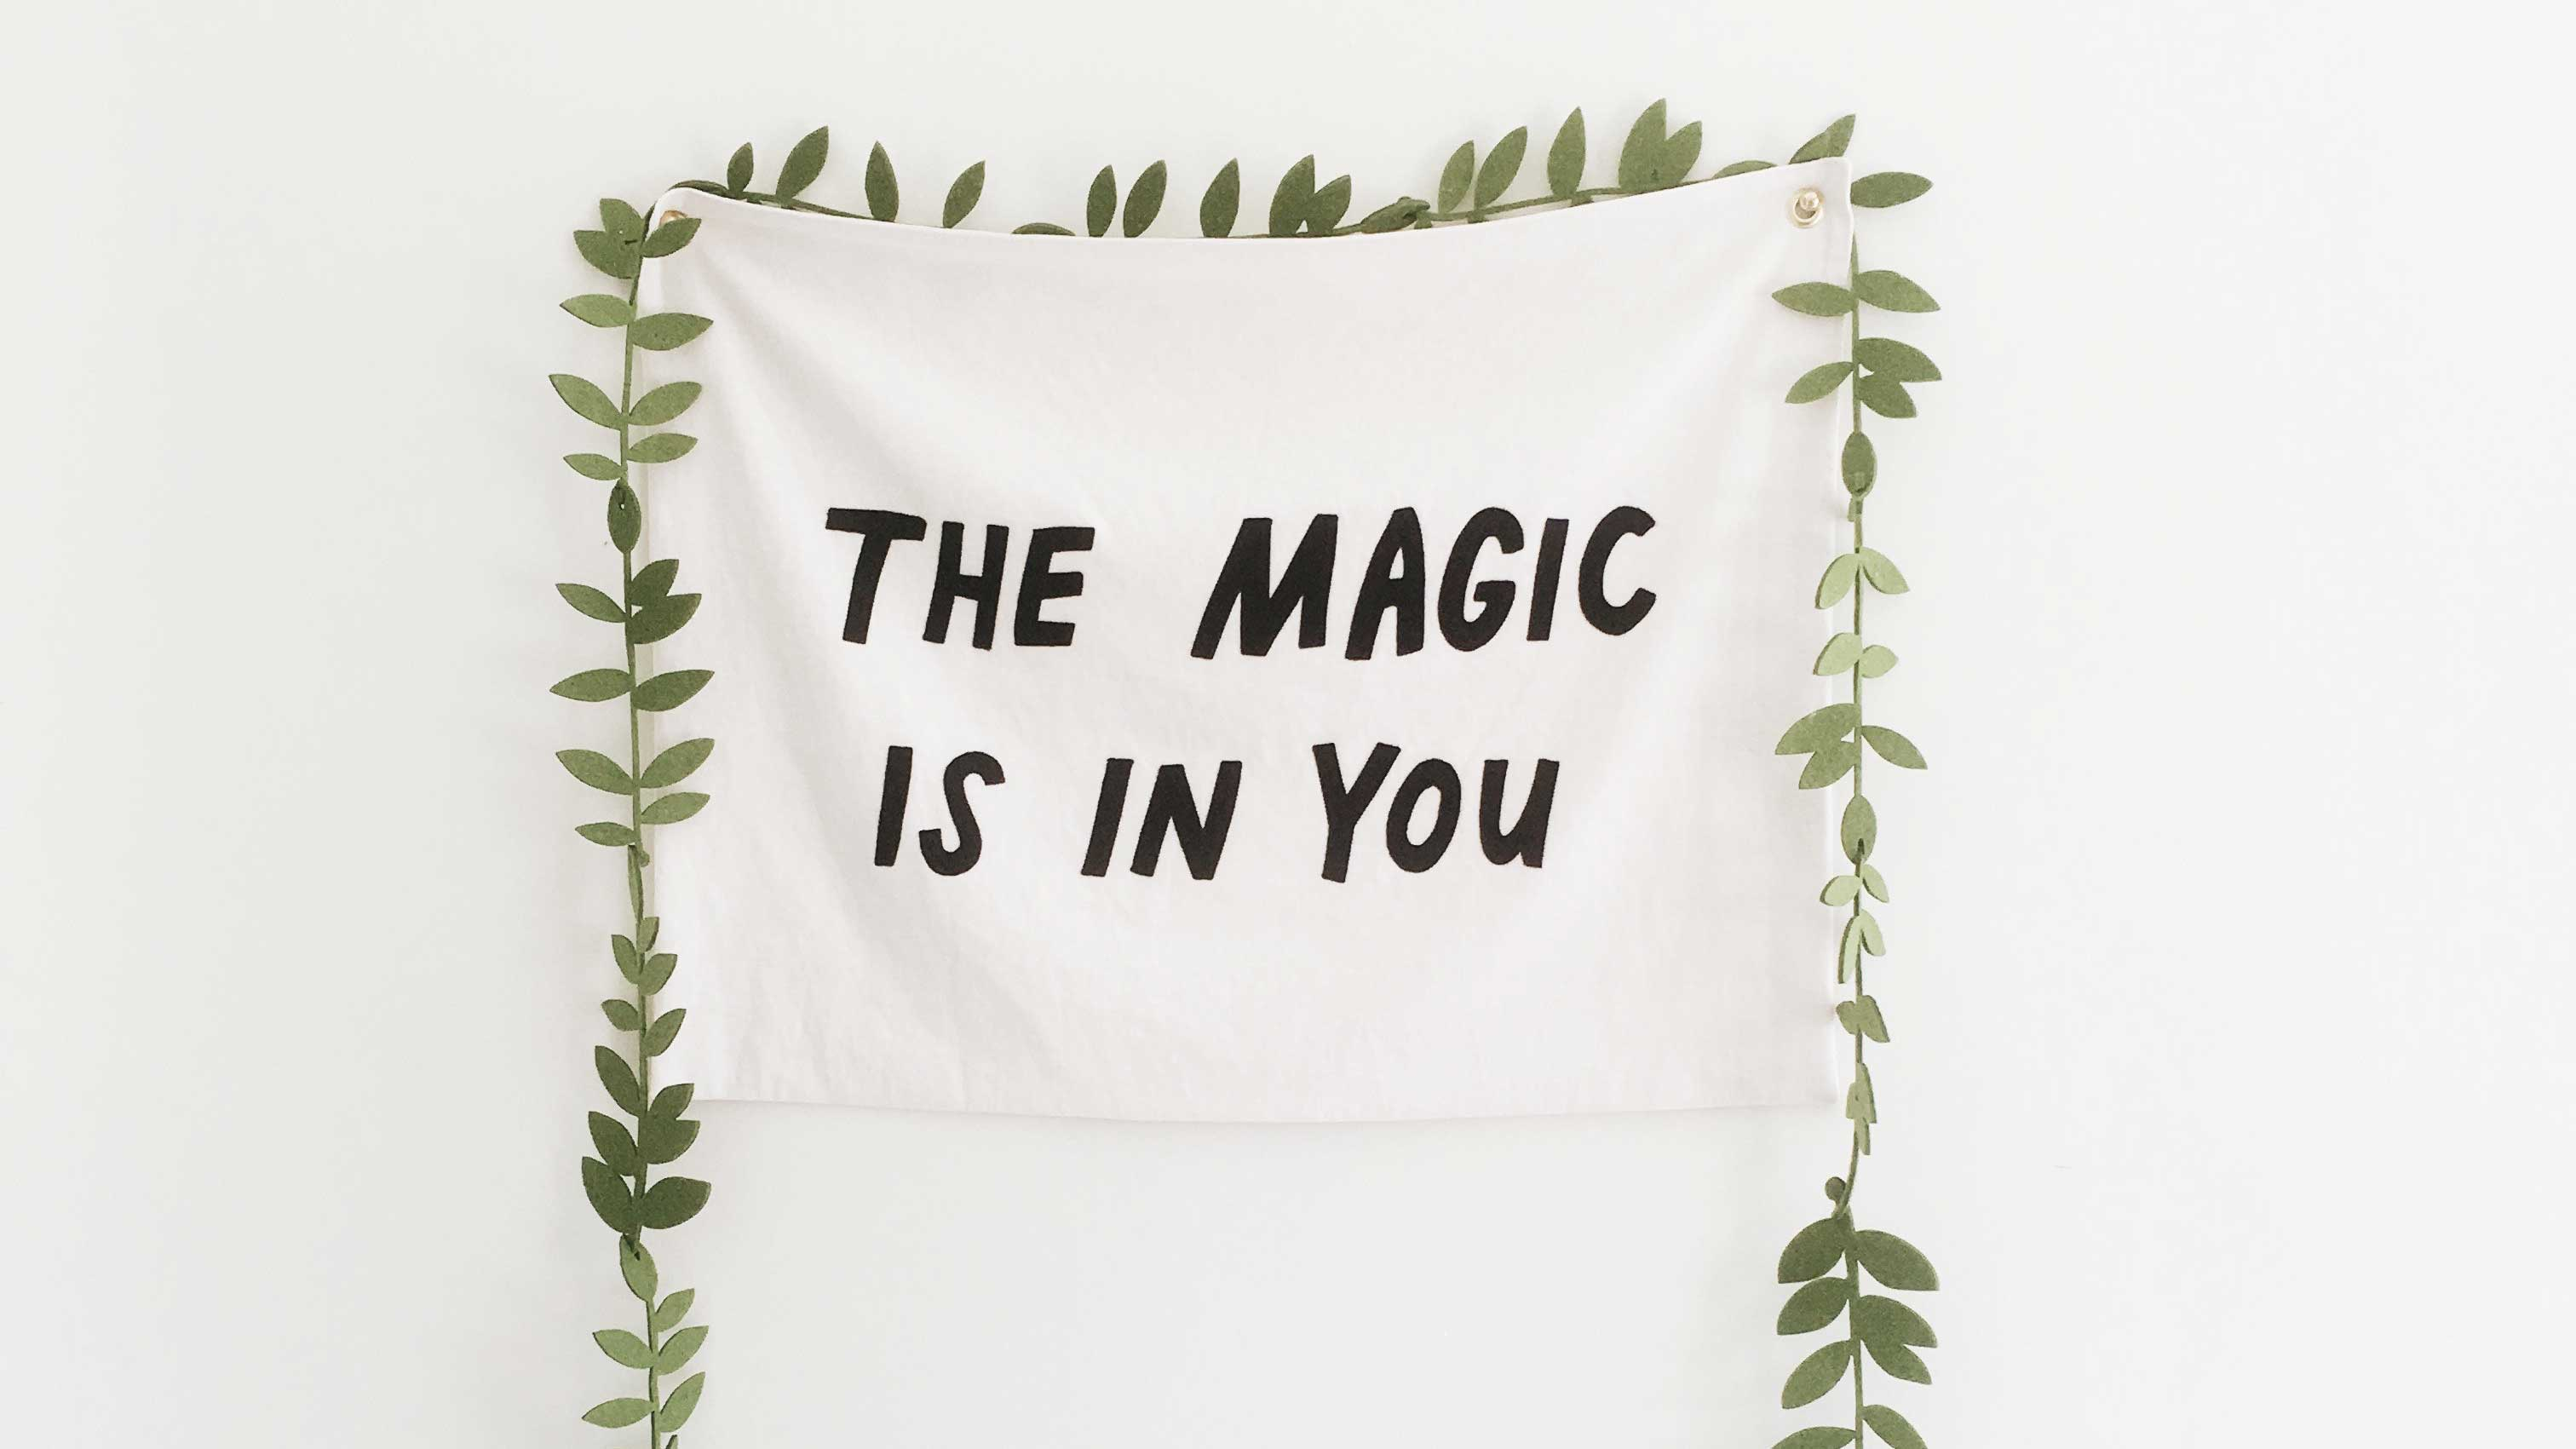 "Pano com a frase ""Tha Magic is in You"" pregado a parede com folhas ao redor, como as de uma árvore."